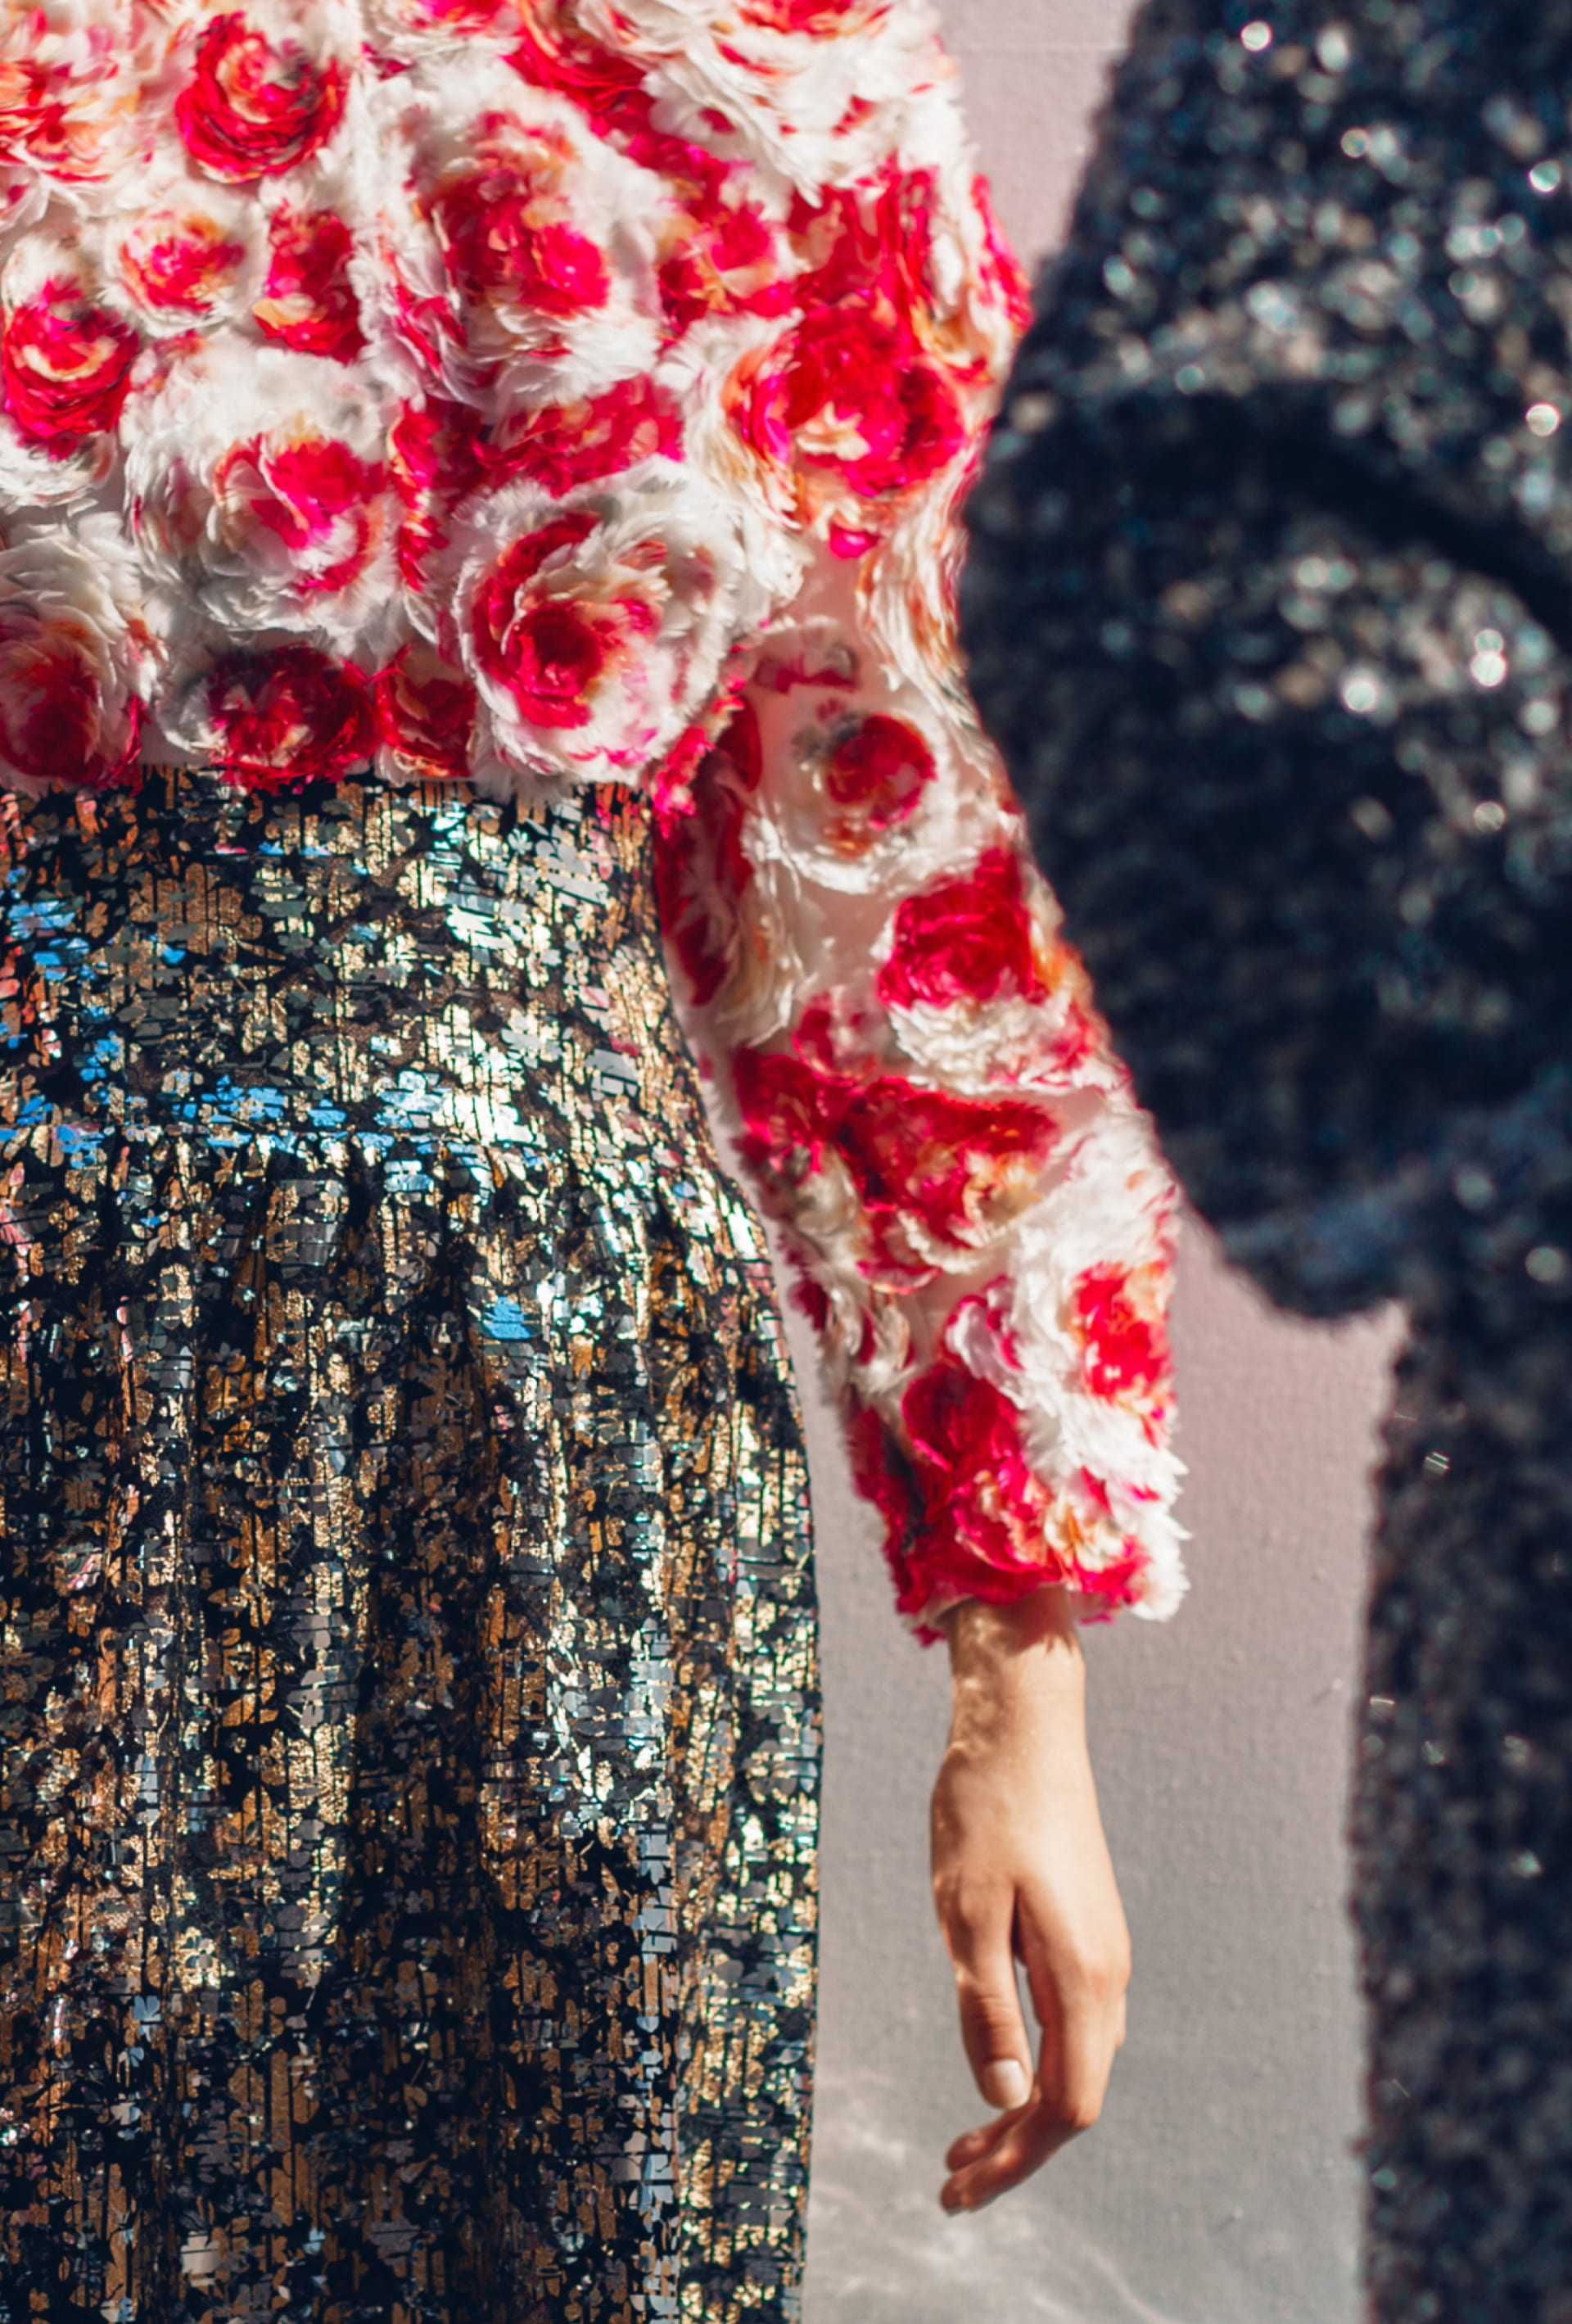 View 5 - Look 48 - Fall-Winter 2019/20 Haute-Couture - see full sized version